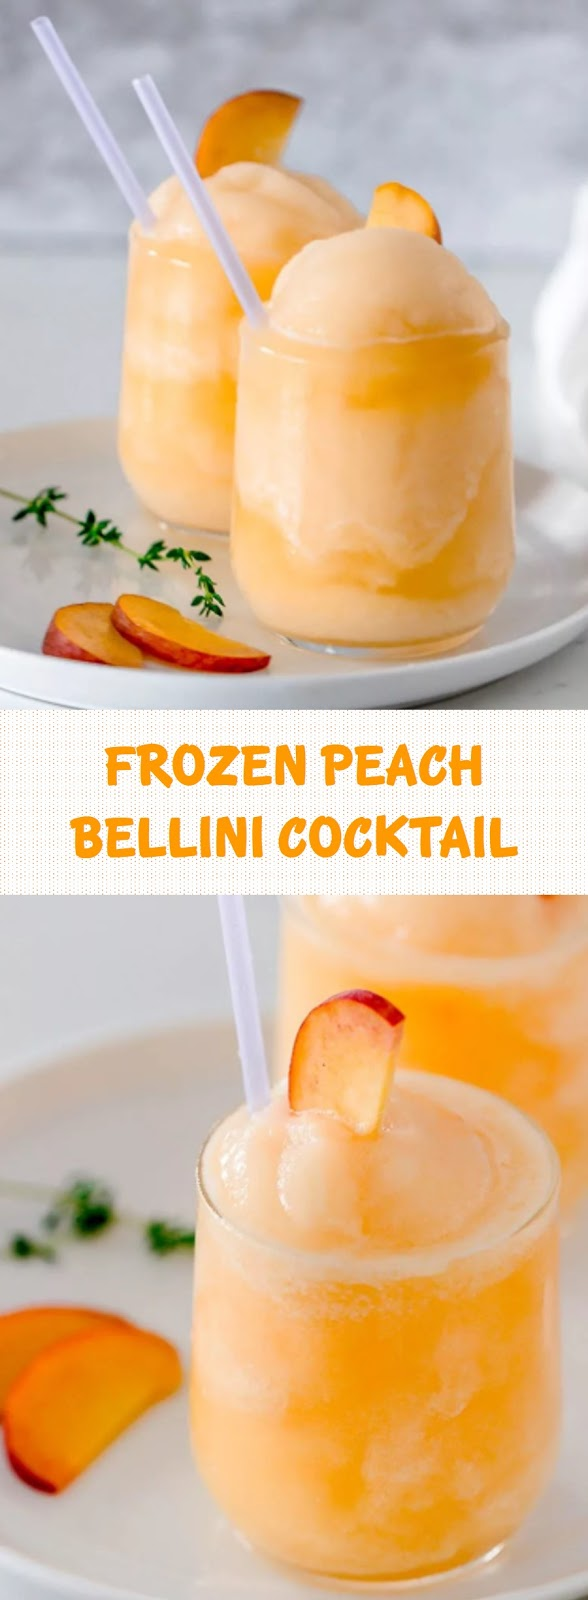 FROZEN PEACH BELLINI COCKTAIL